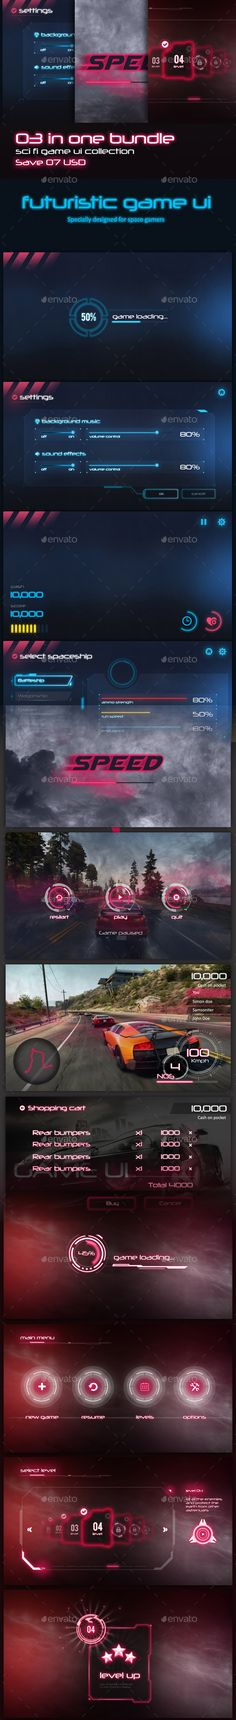 3 in 1 Sci-fi Game UI Bundle - #User Interfaces #Game Assets Download here: https://graphicriver.net/item/3-in-1-scifi-game-ui-bundle/19762579?ref=alena994